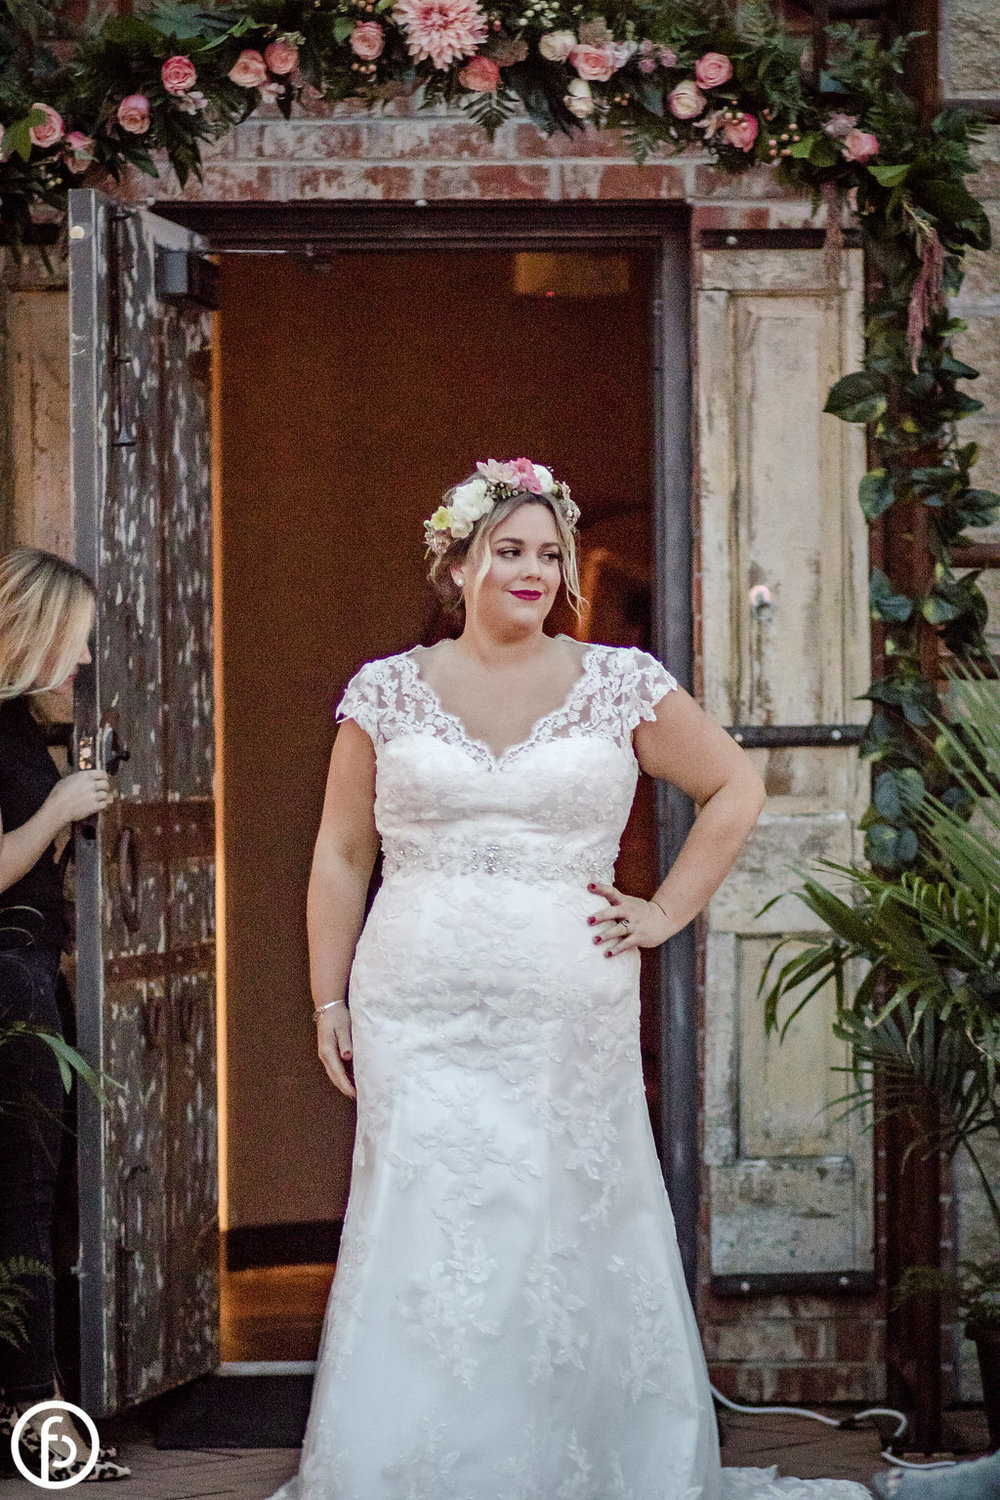 Plus Size Bride Kansas City | All My Heart Bridal